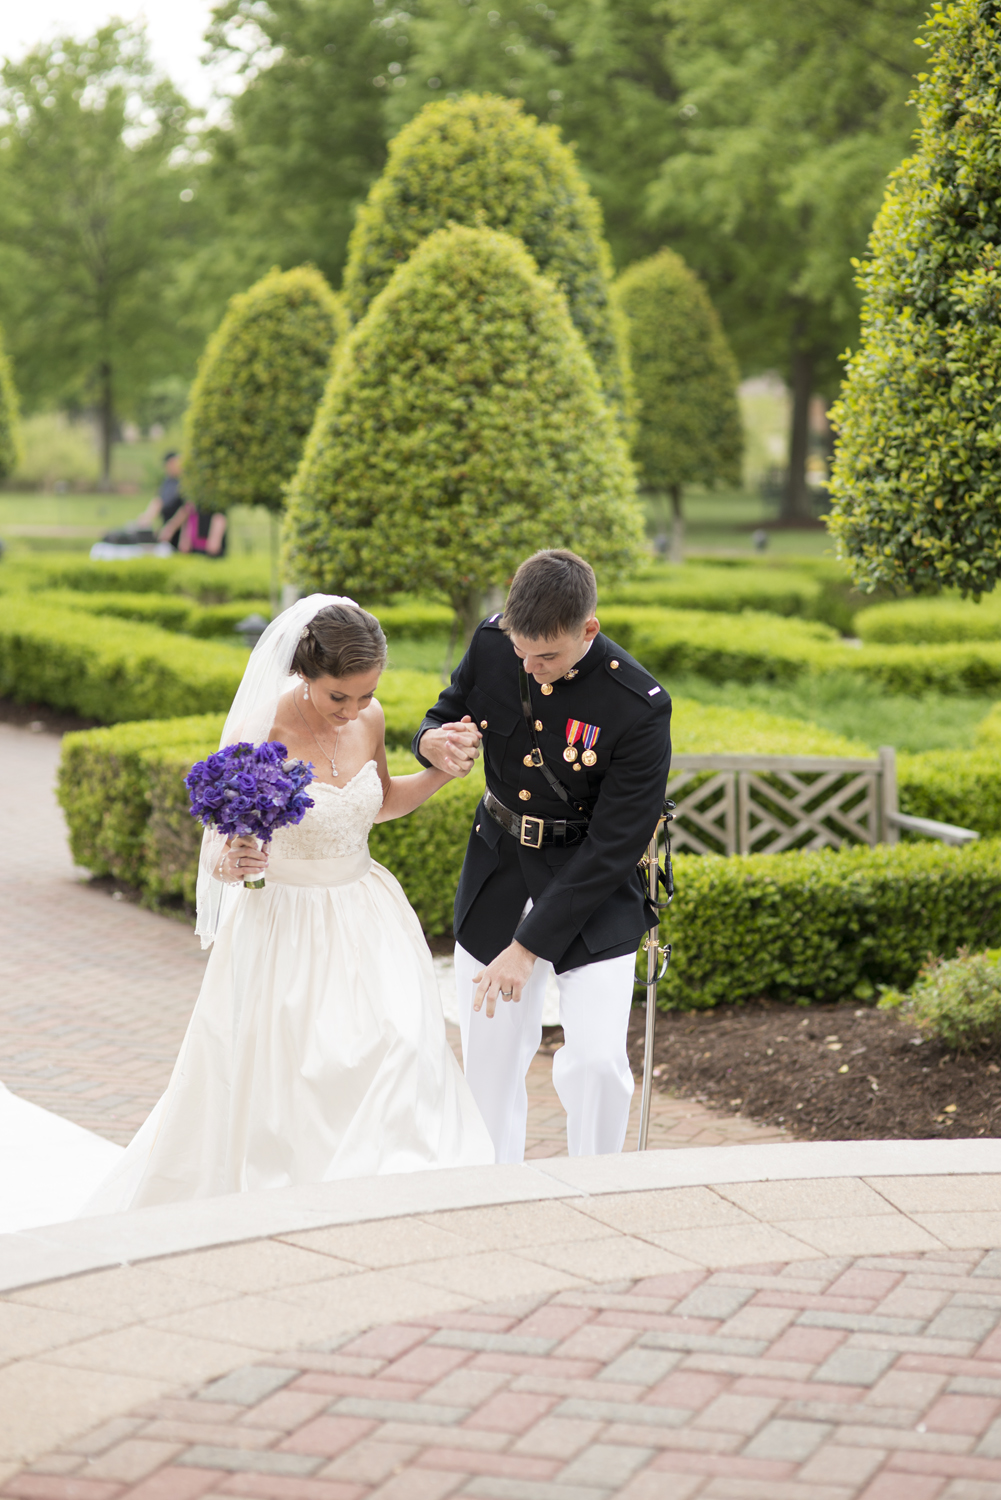 Groom helping his bride down the aisle |Maria Grace Photography